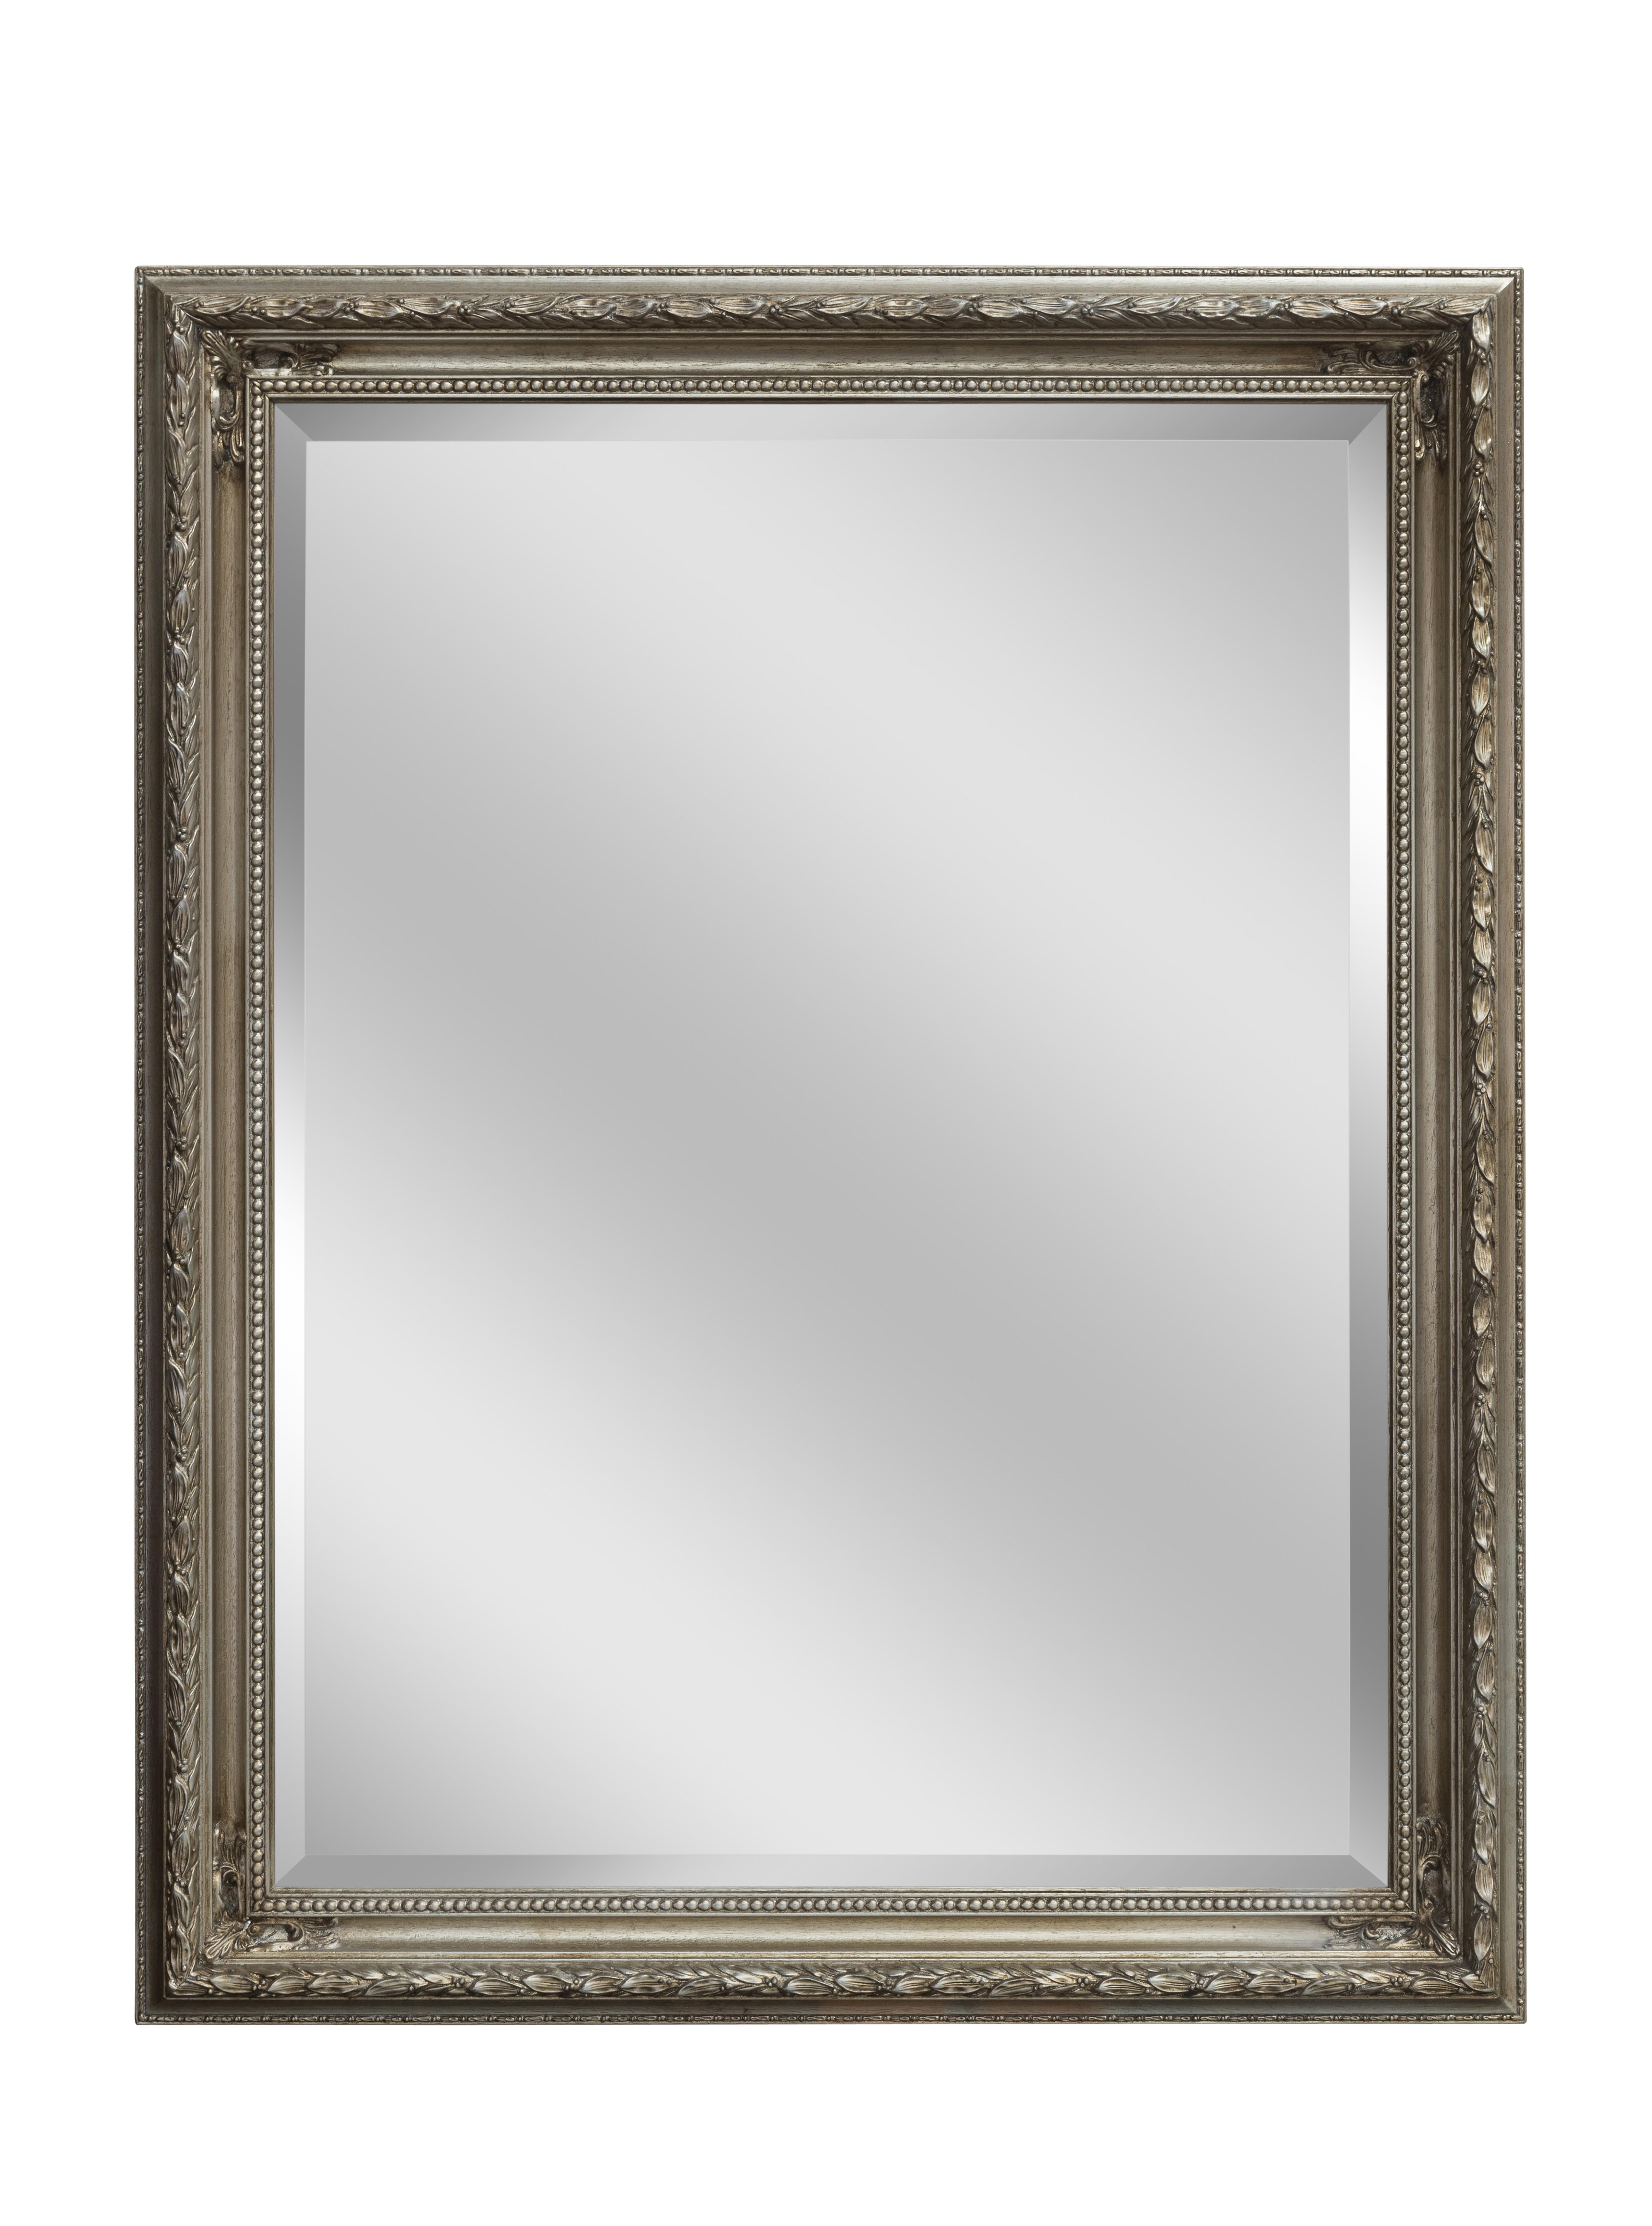 Silver Baroque Mirror | Large Mirrors For Sale – Panfili Mirrors Throughout Large Baroque Mirror (Image 19 of 20)